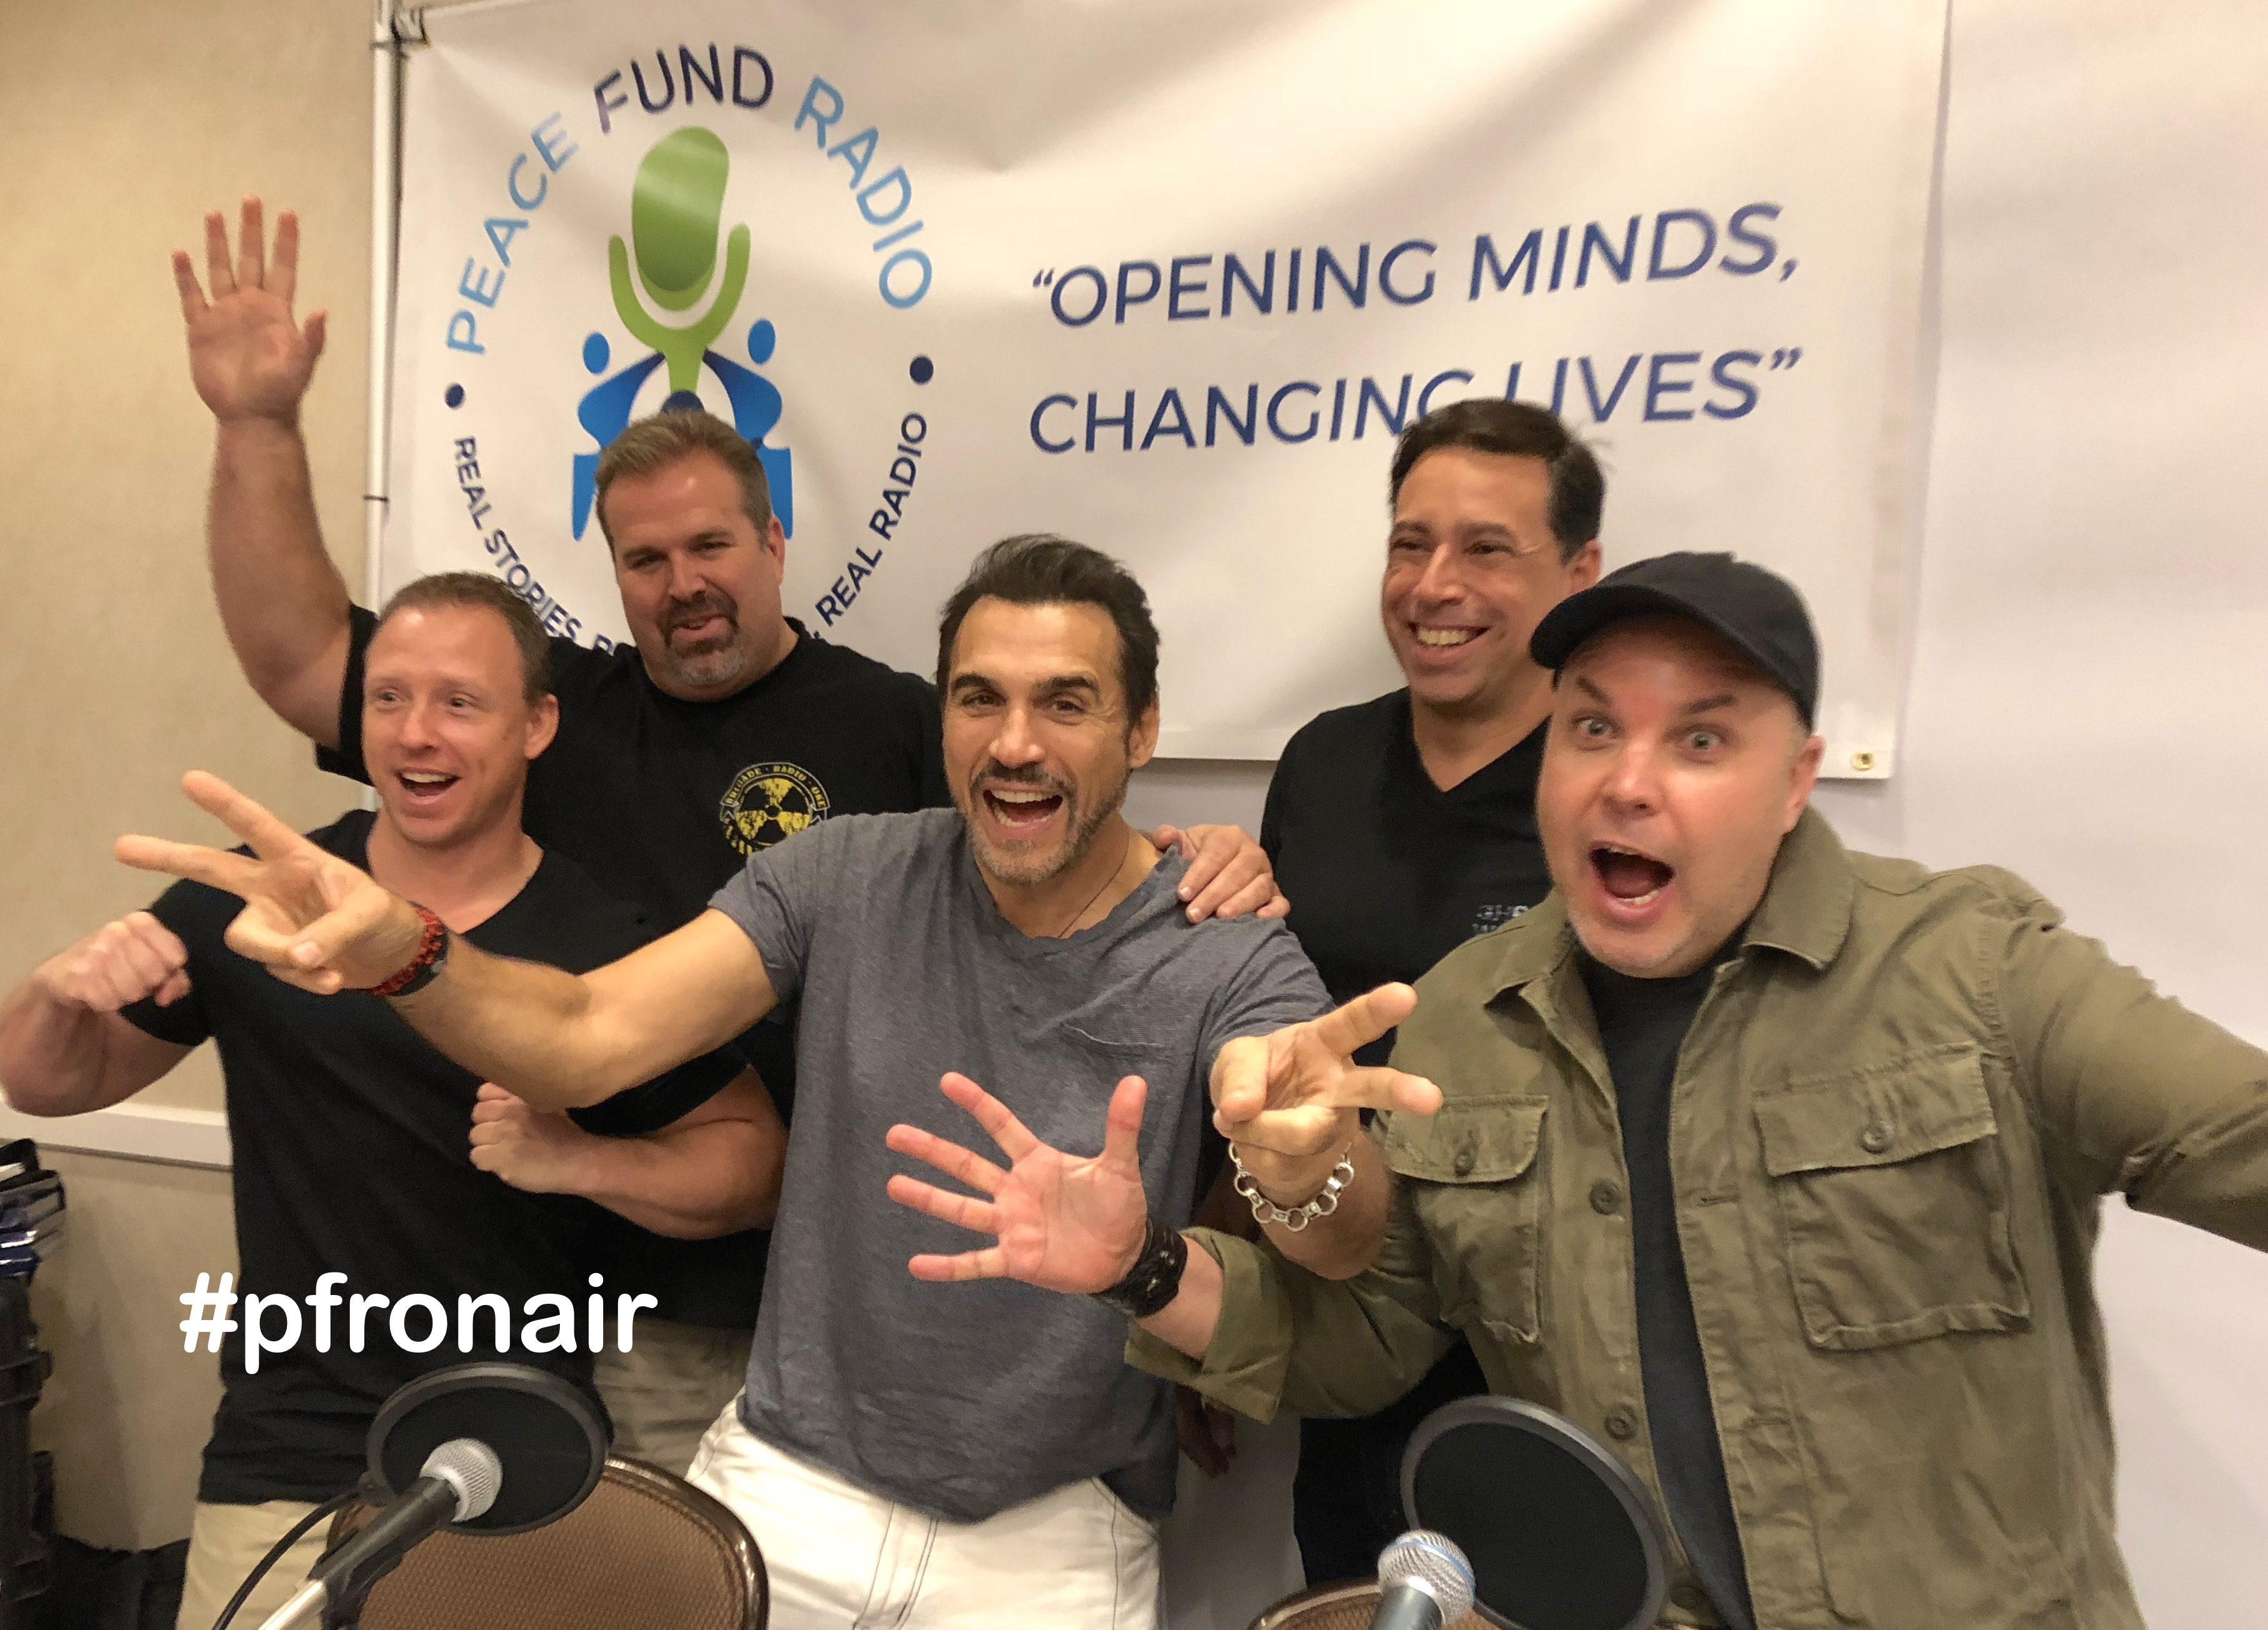 Kevin Otte, Ethan Dettenmaier, Adrian Paul, Paul Roberts and Neo Edmund